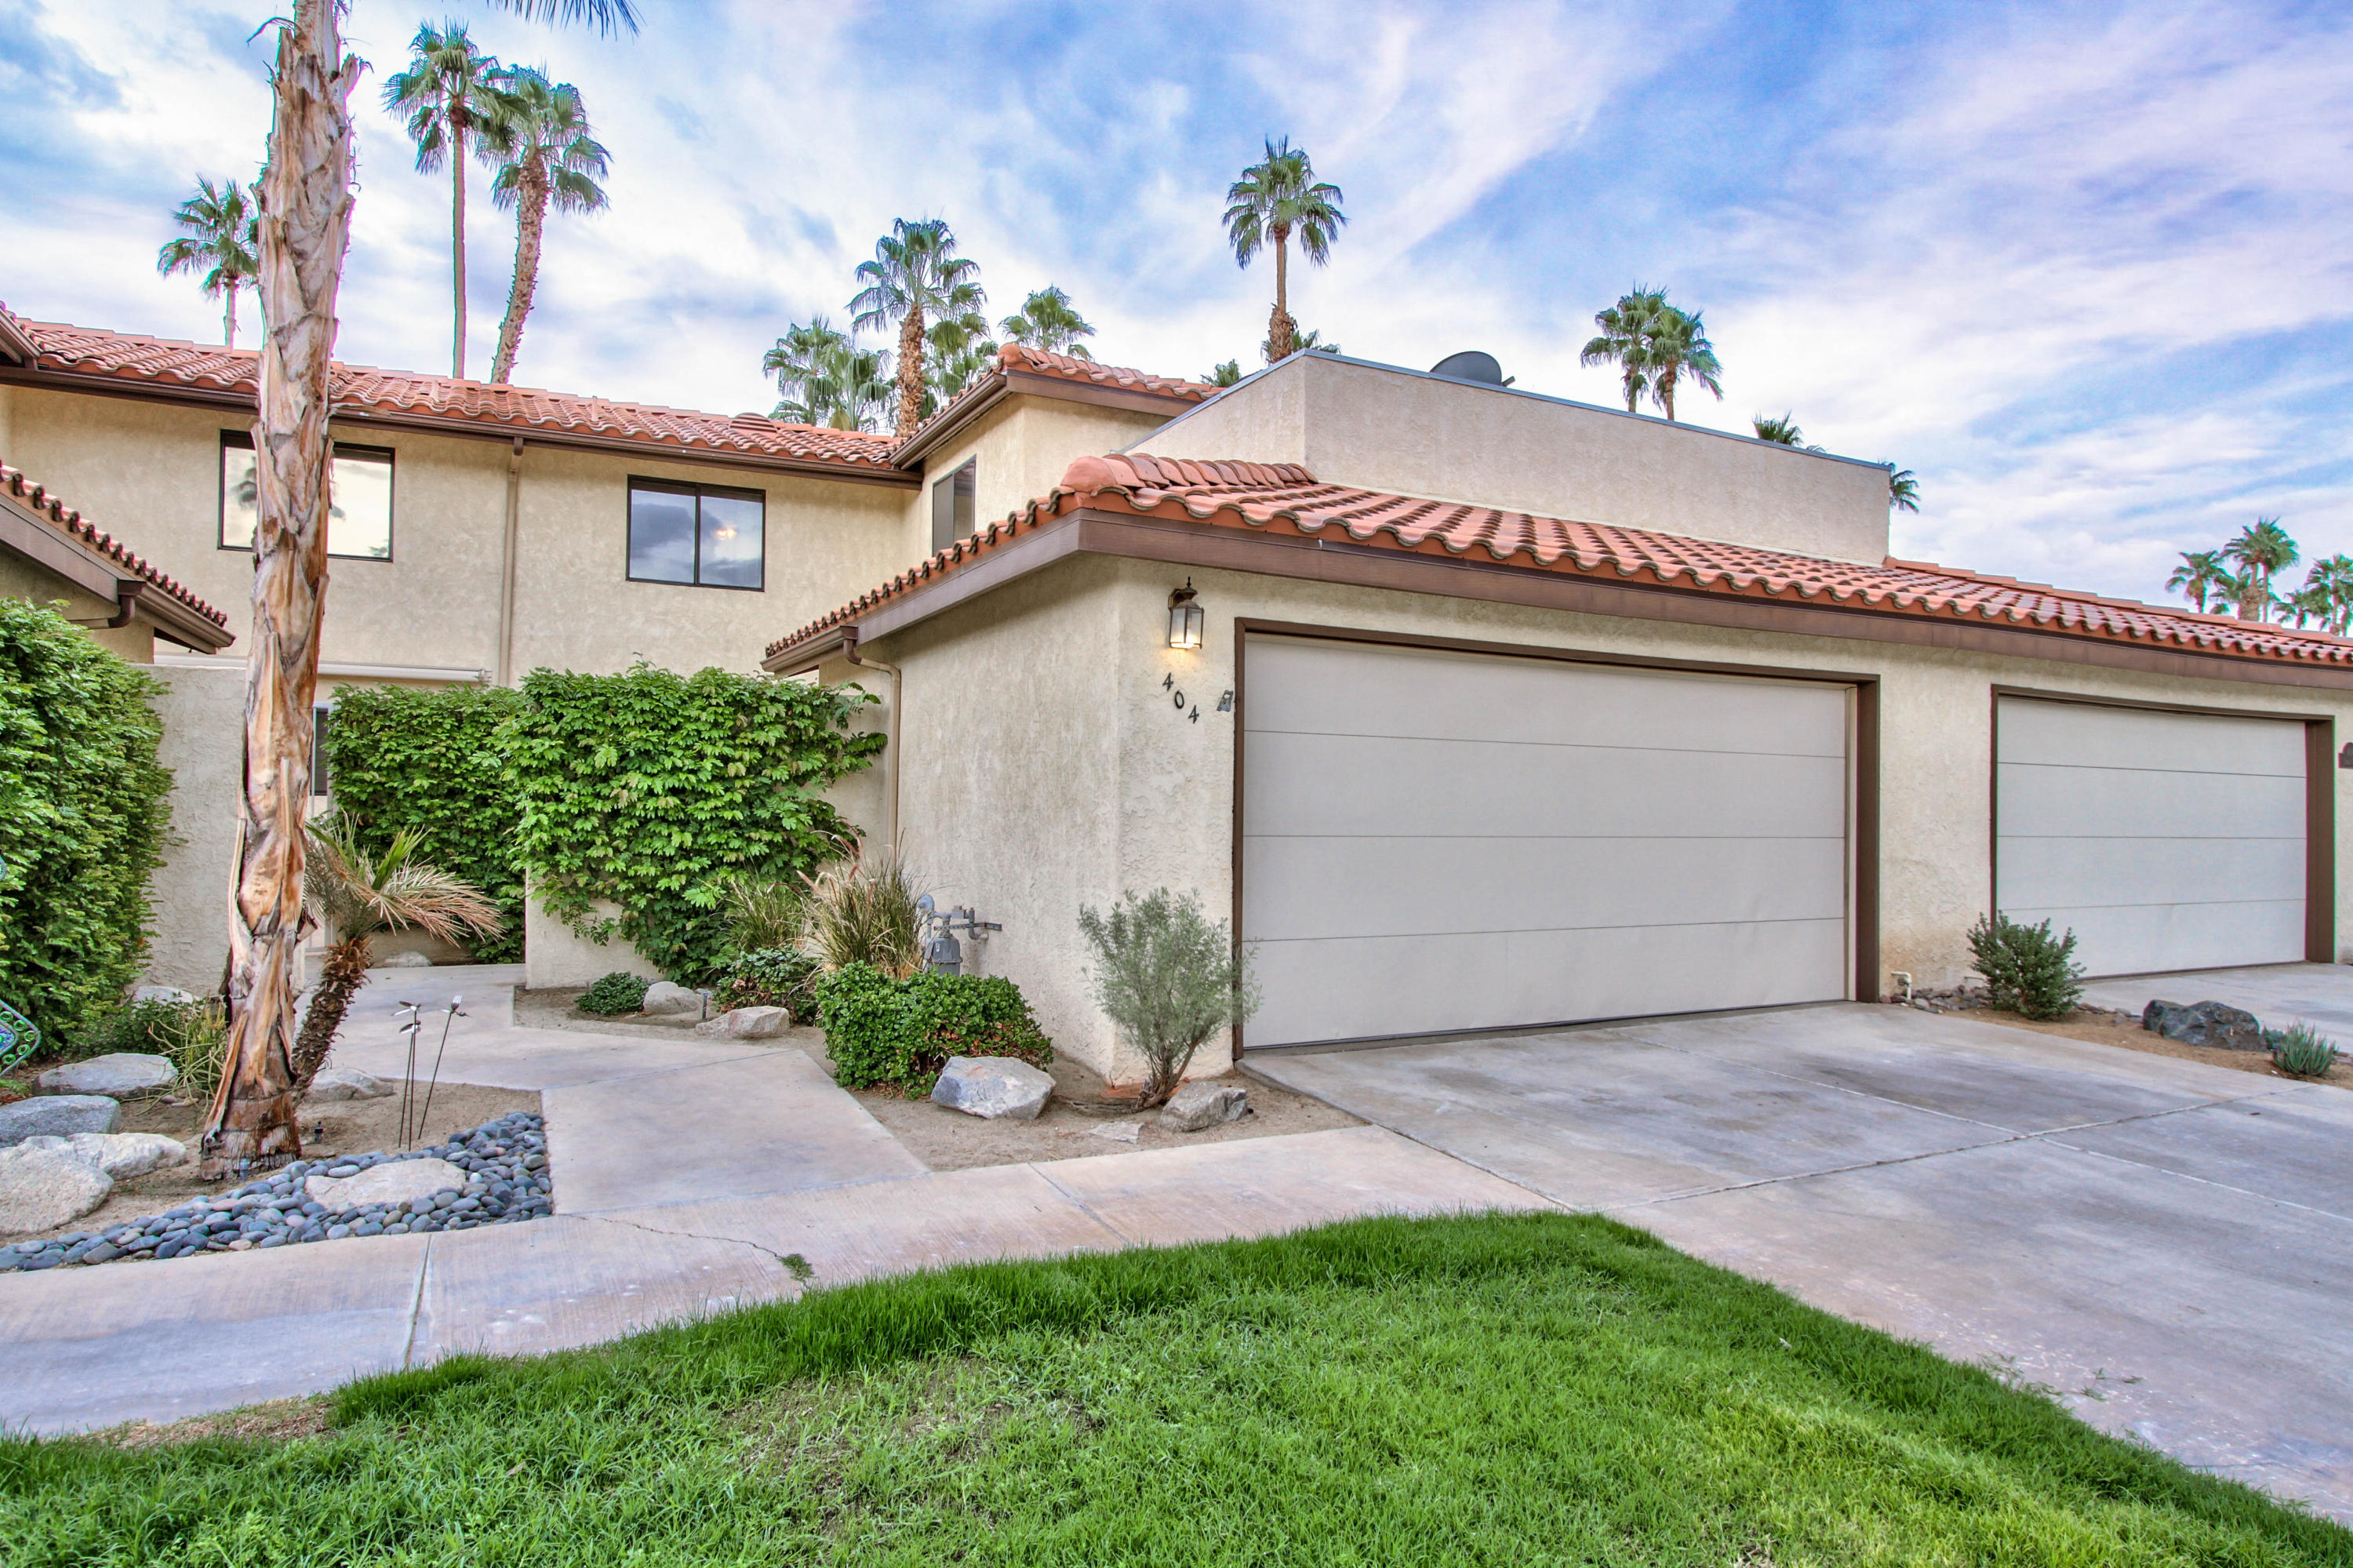 Find Homes For Sale & Open Houses at TheMLS.com